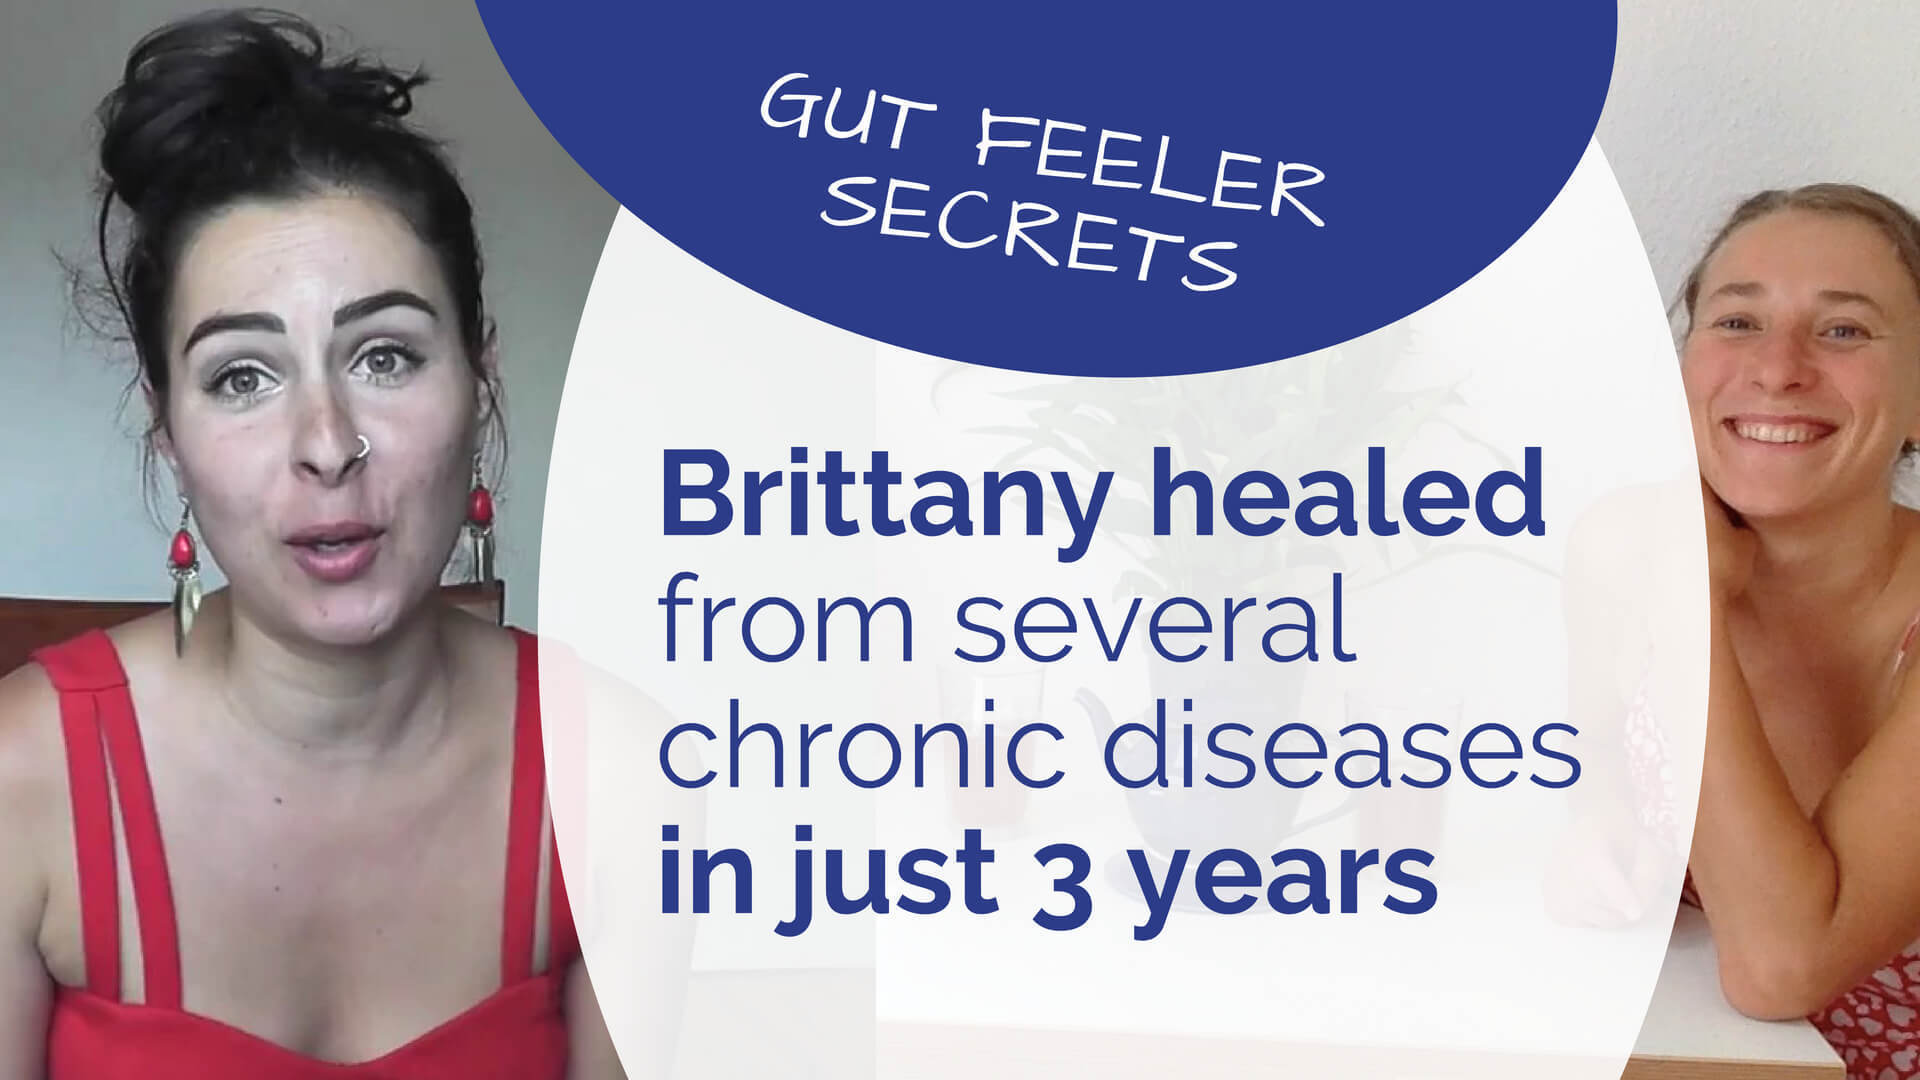 Gut Feelers Share, Montreal Healthy Girl Chronic Illness, Gut Feelings.jpg